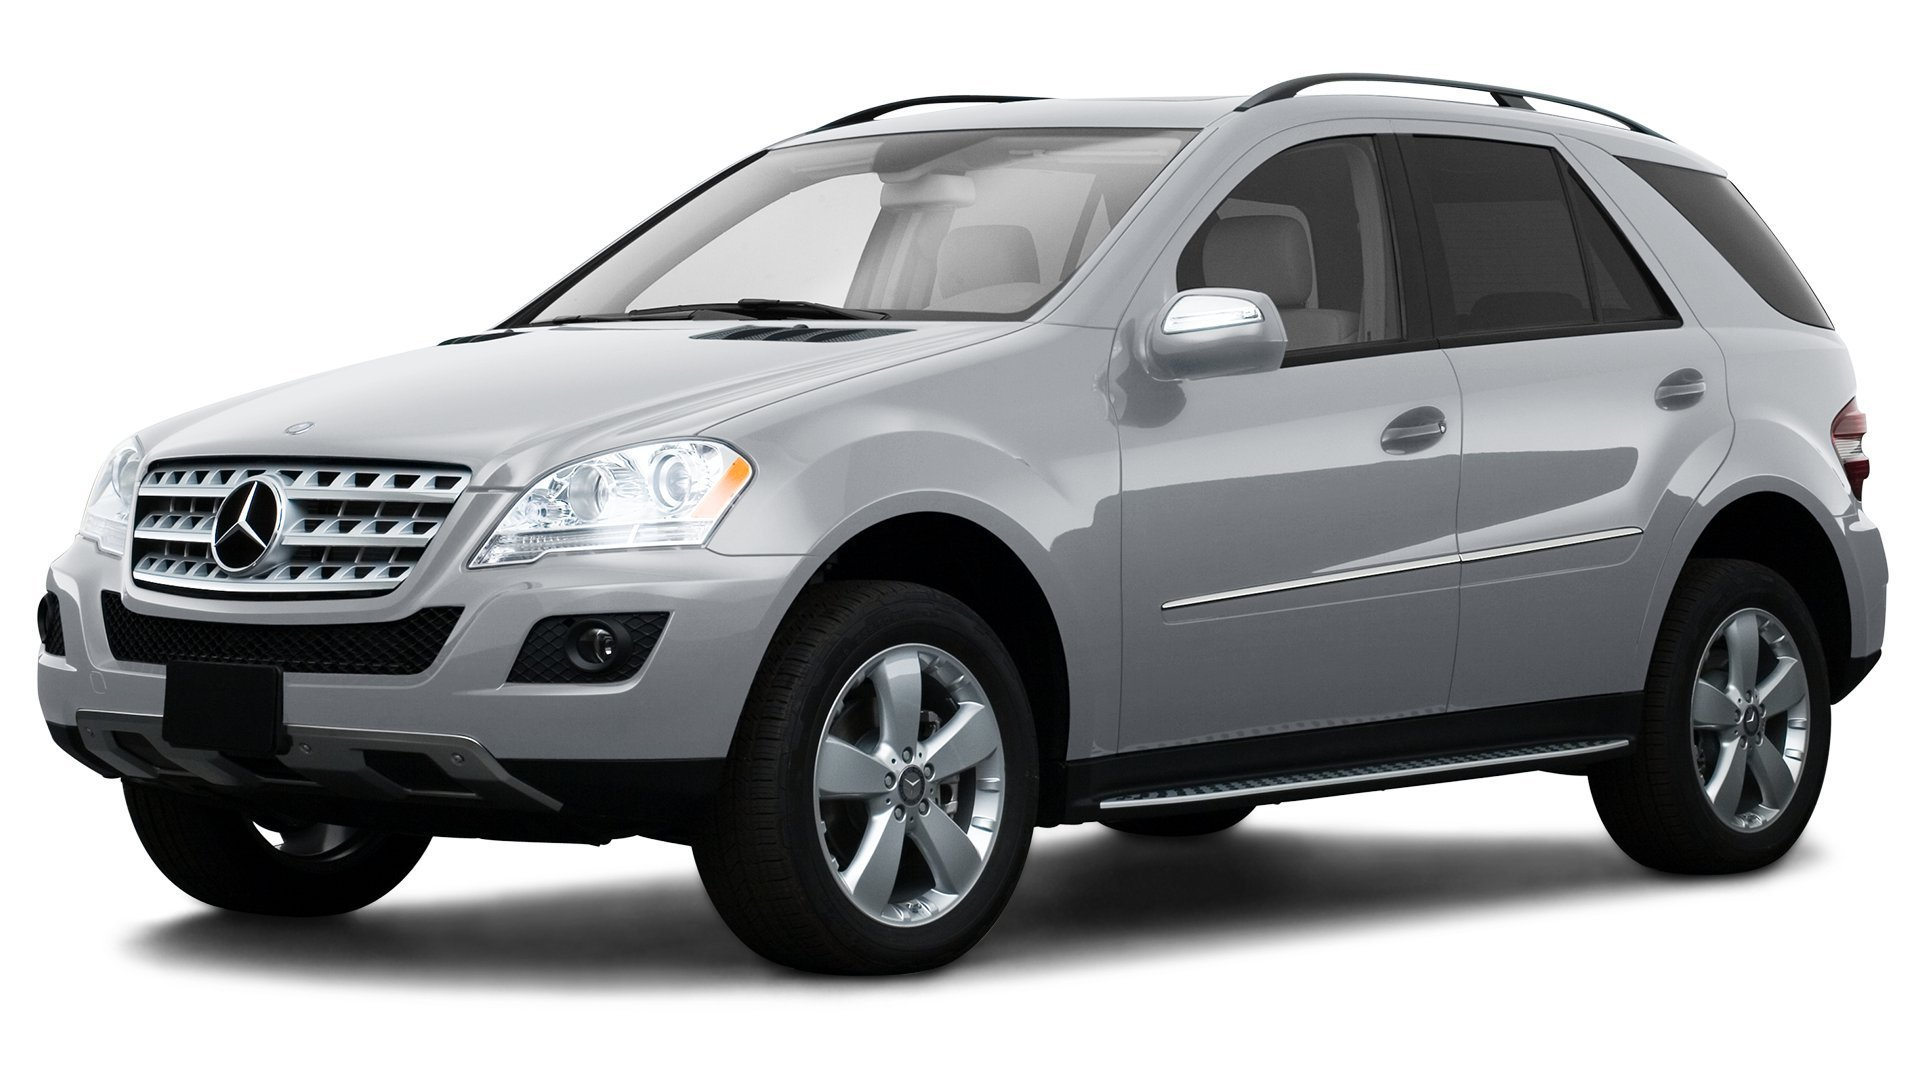 2009 Mercedes-Benz ML320 3.0L BlueTEC, 4MATIC 4-Door ...